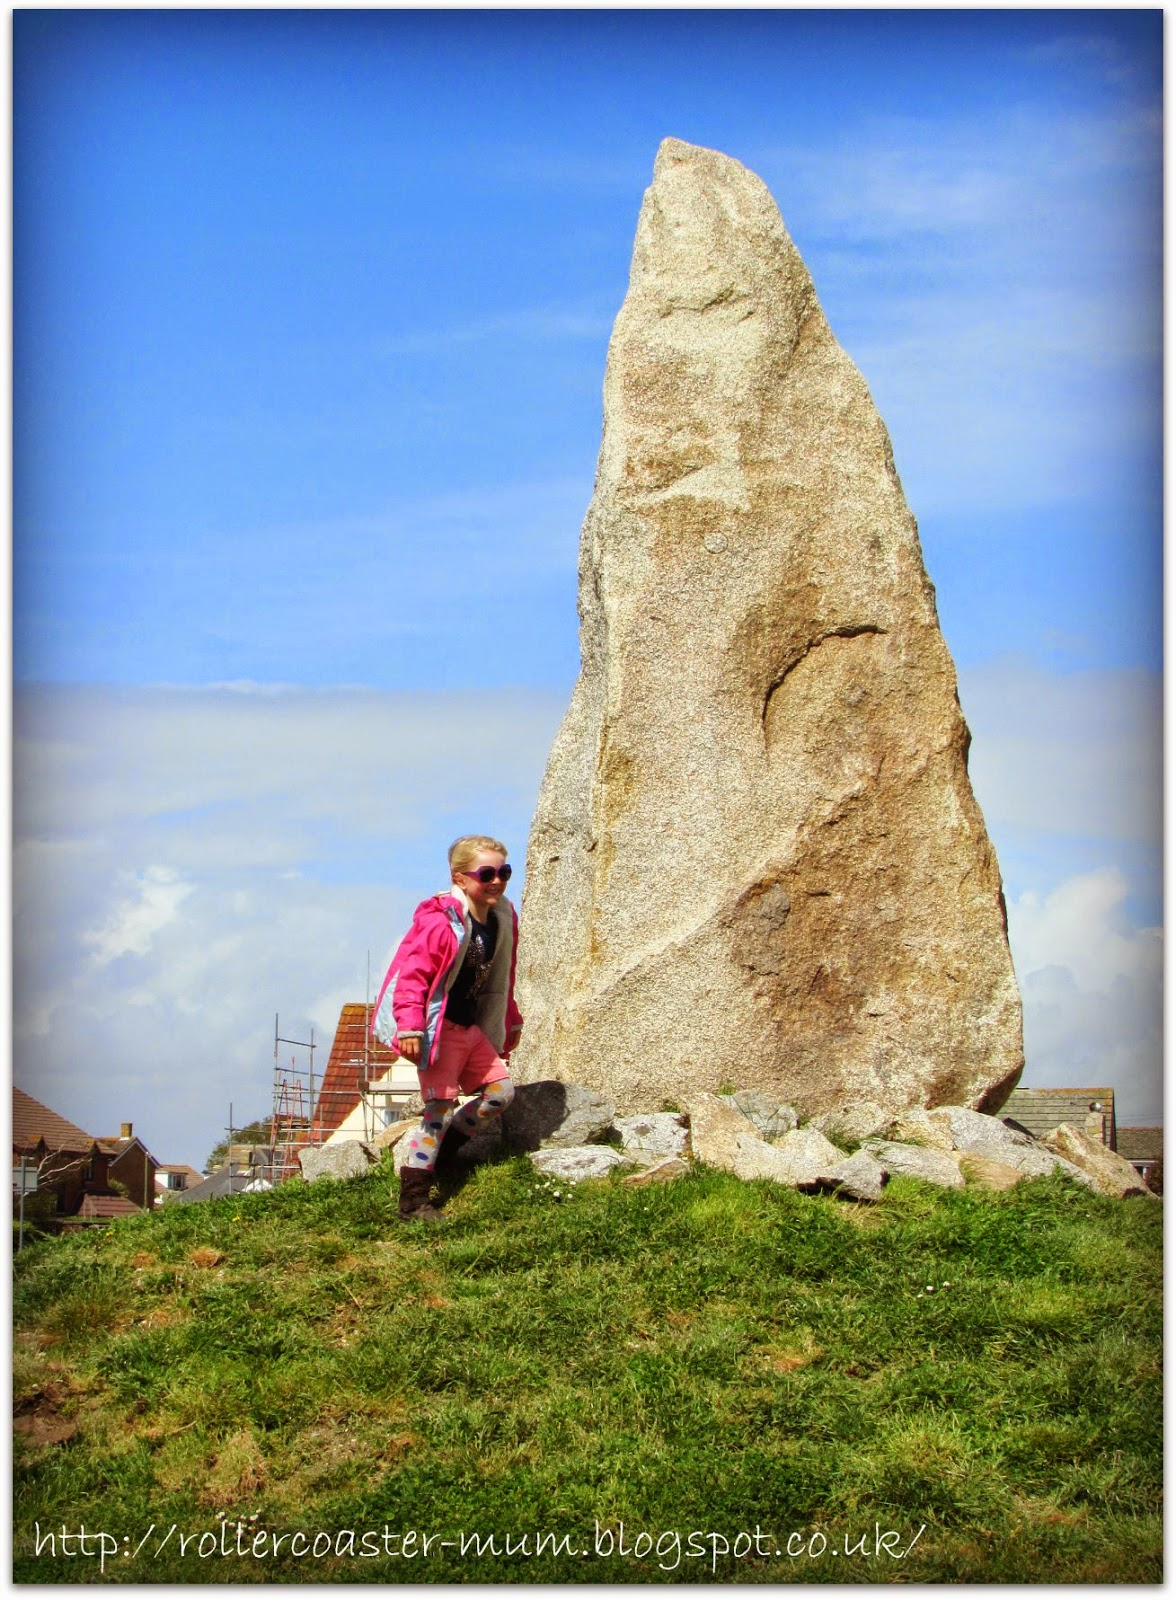 curious monolith, Hayling Island